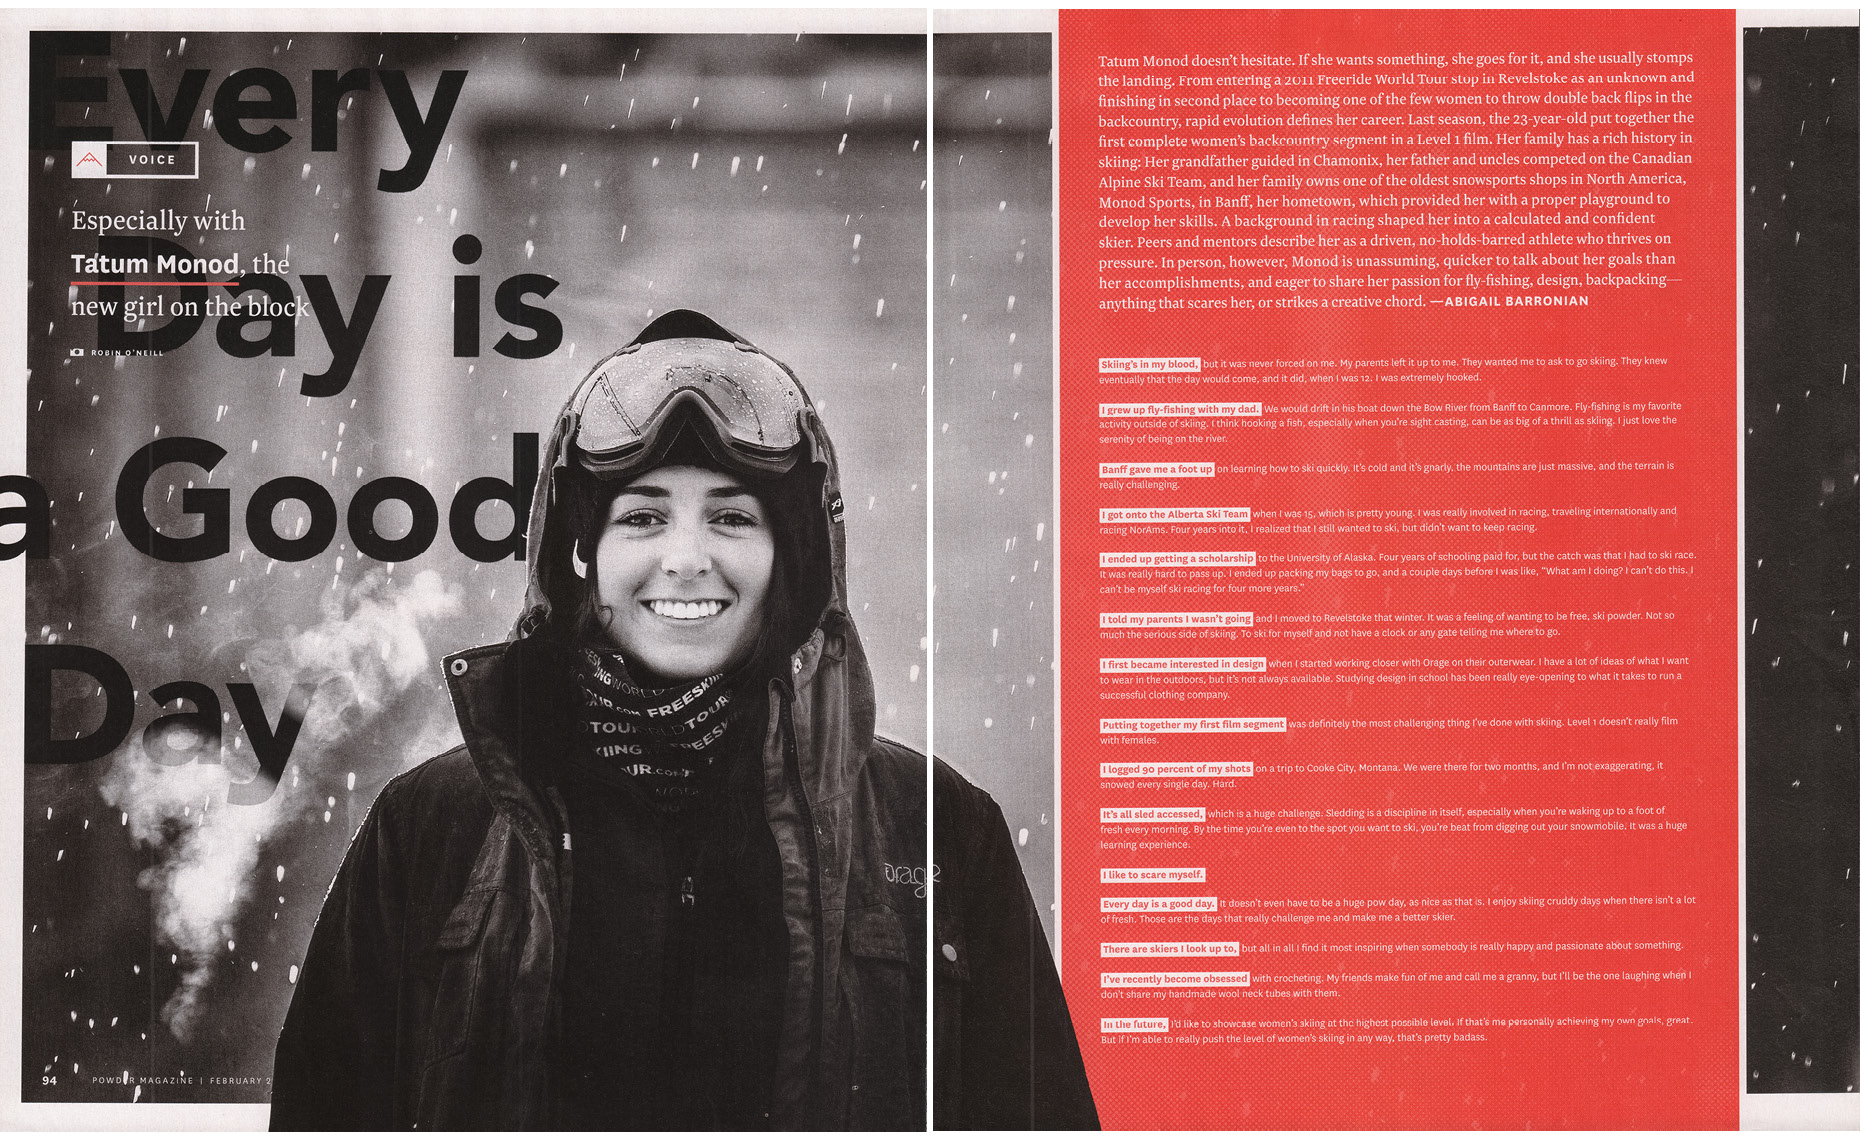 Female ski athlete Tatum Monod in Powder Magazine.